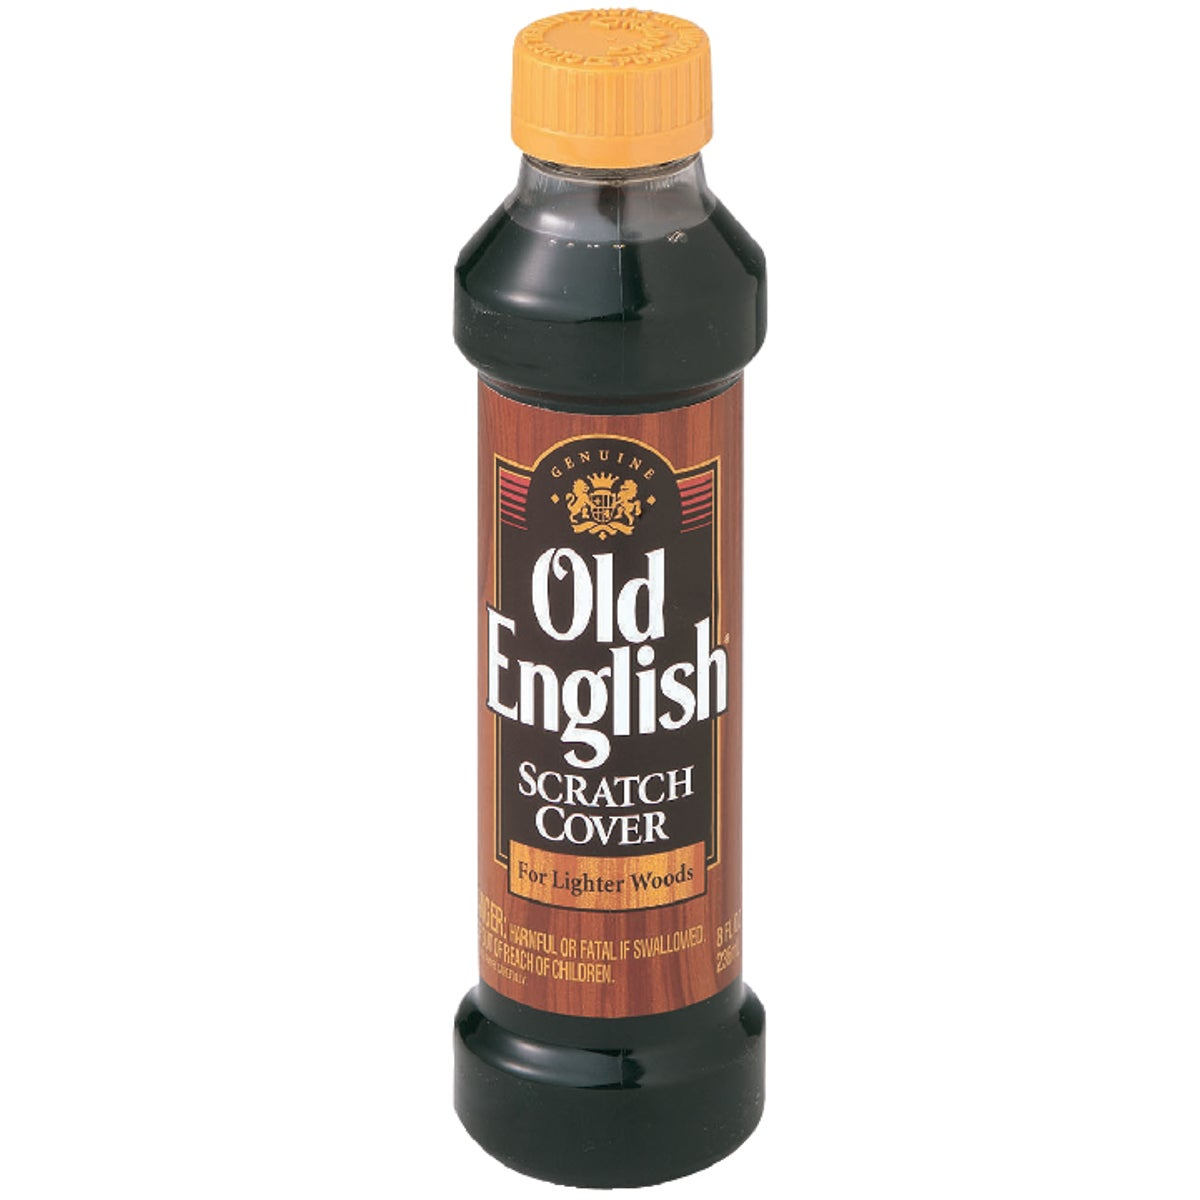 Old English Scratch Cover Wood Polish, 6233875462